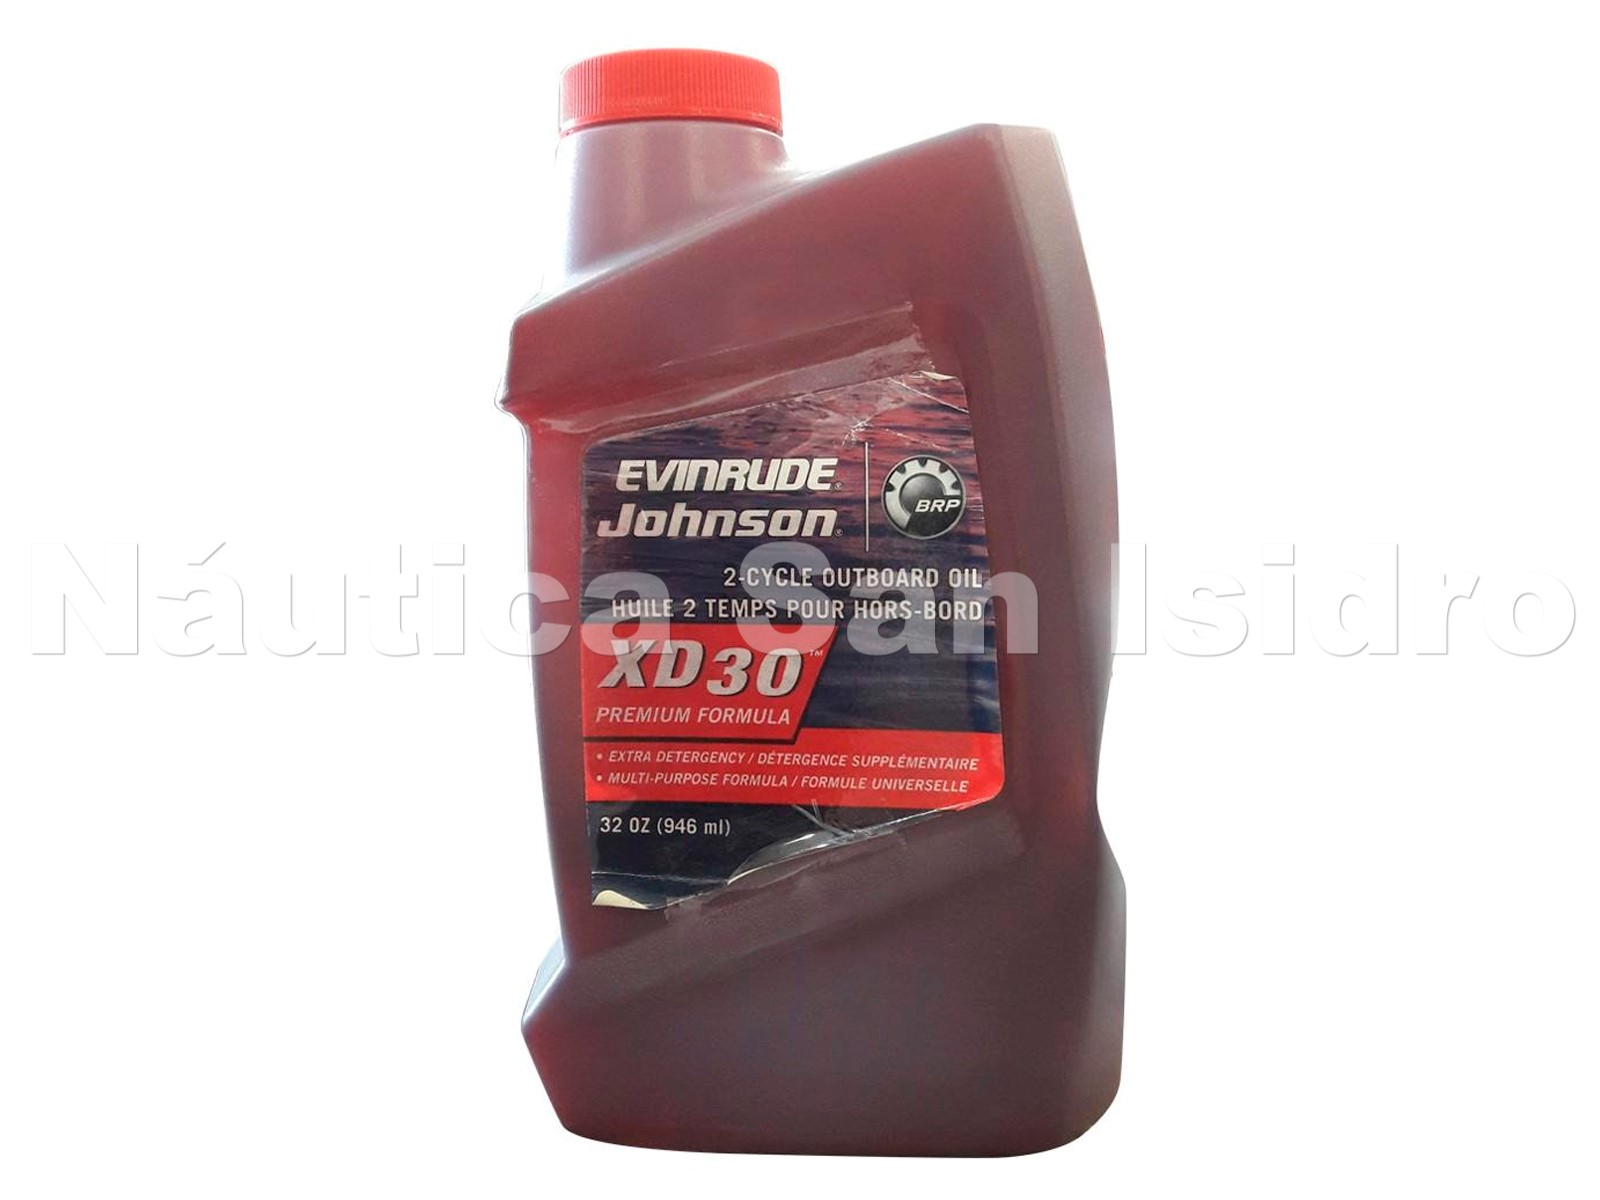 ACEITE EVINRUDE JOHNSON TCW3 XD30 2T x 1 Lt